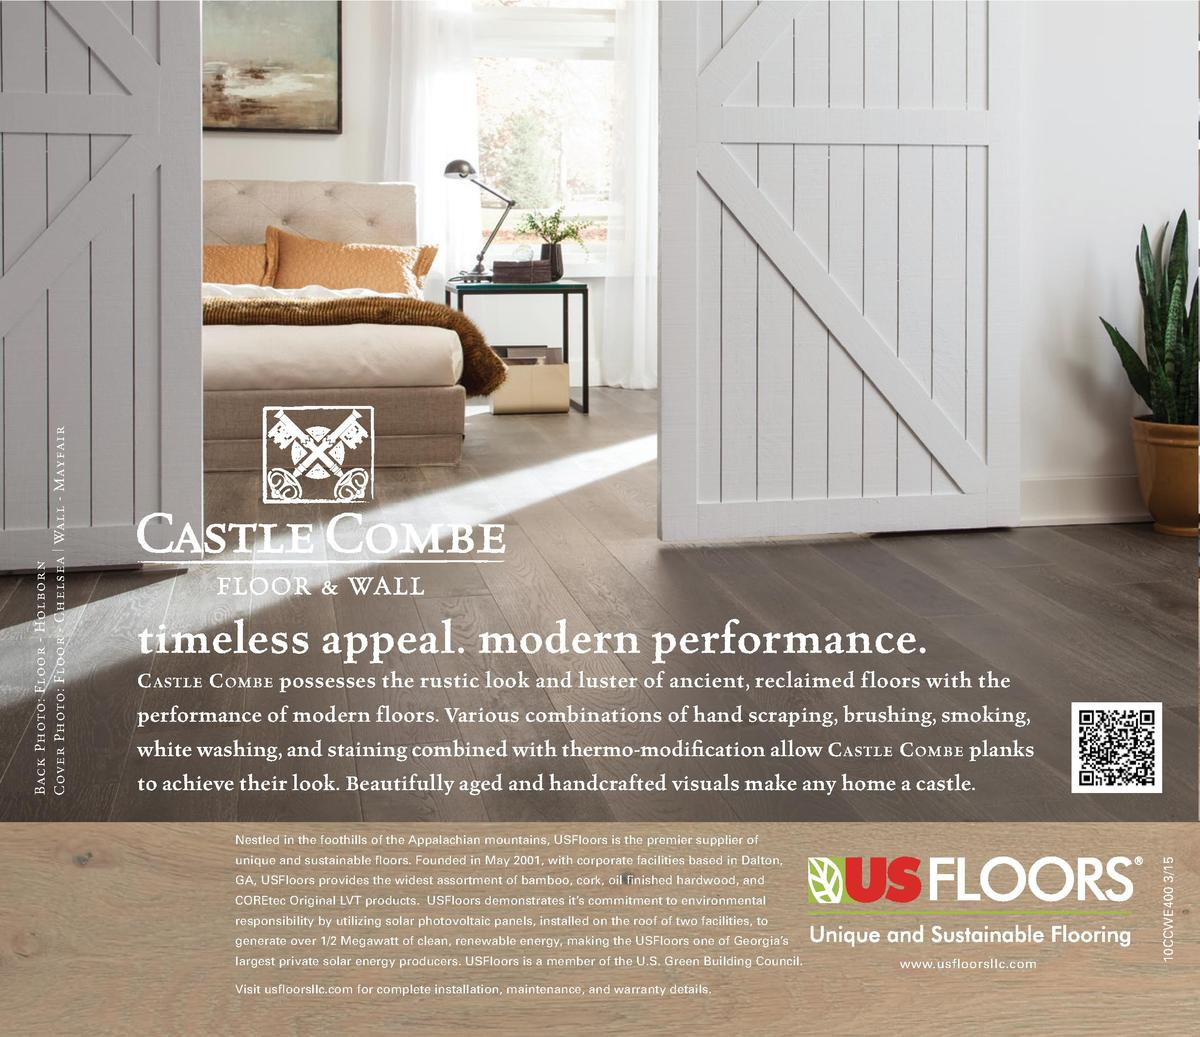 C astle C ombe possesses the rustic look and luster of ancient, reclaimed floors with the performance of modern floors. Va...